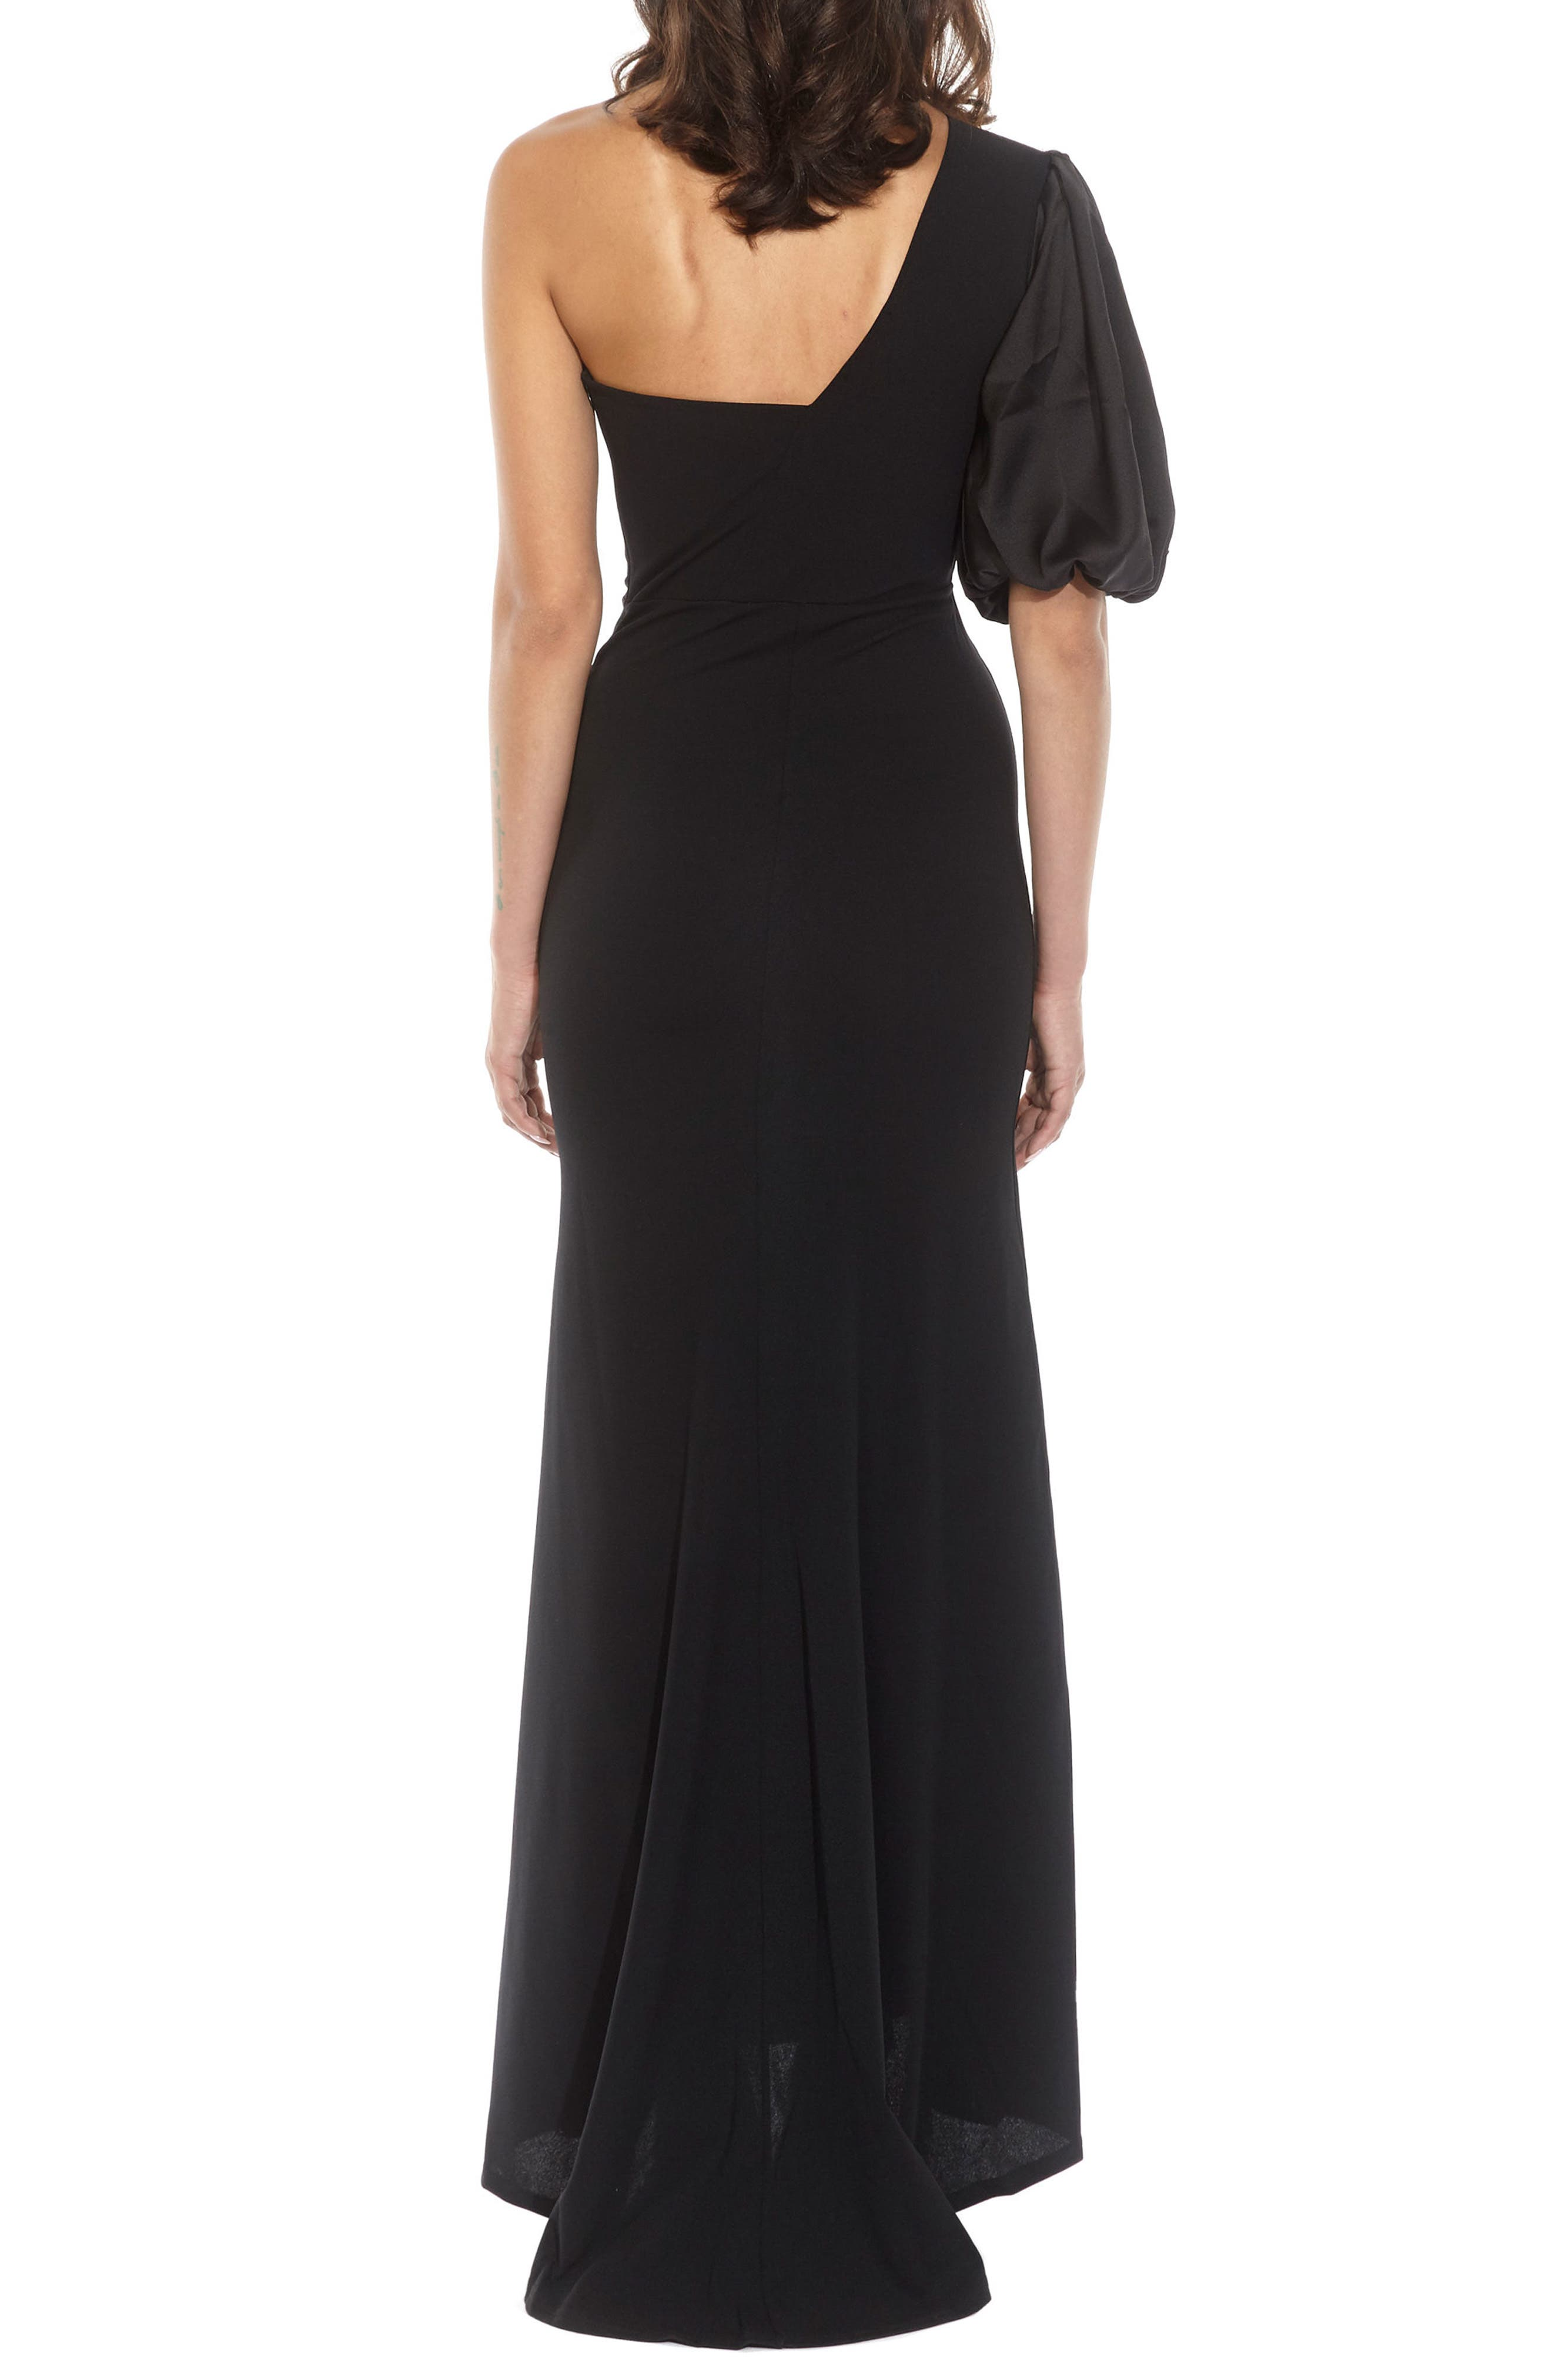 Nawell One-Shoulder Puff Sleeve Gown,                             Alternate thumbnail 2, color,                             001